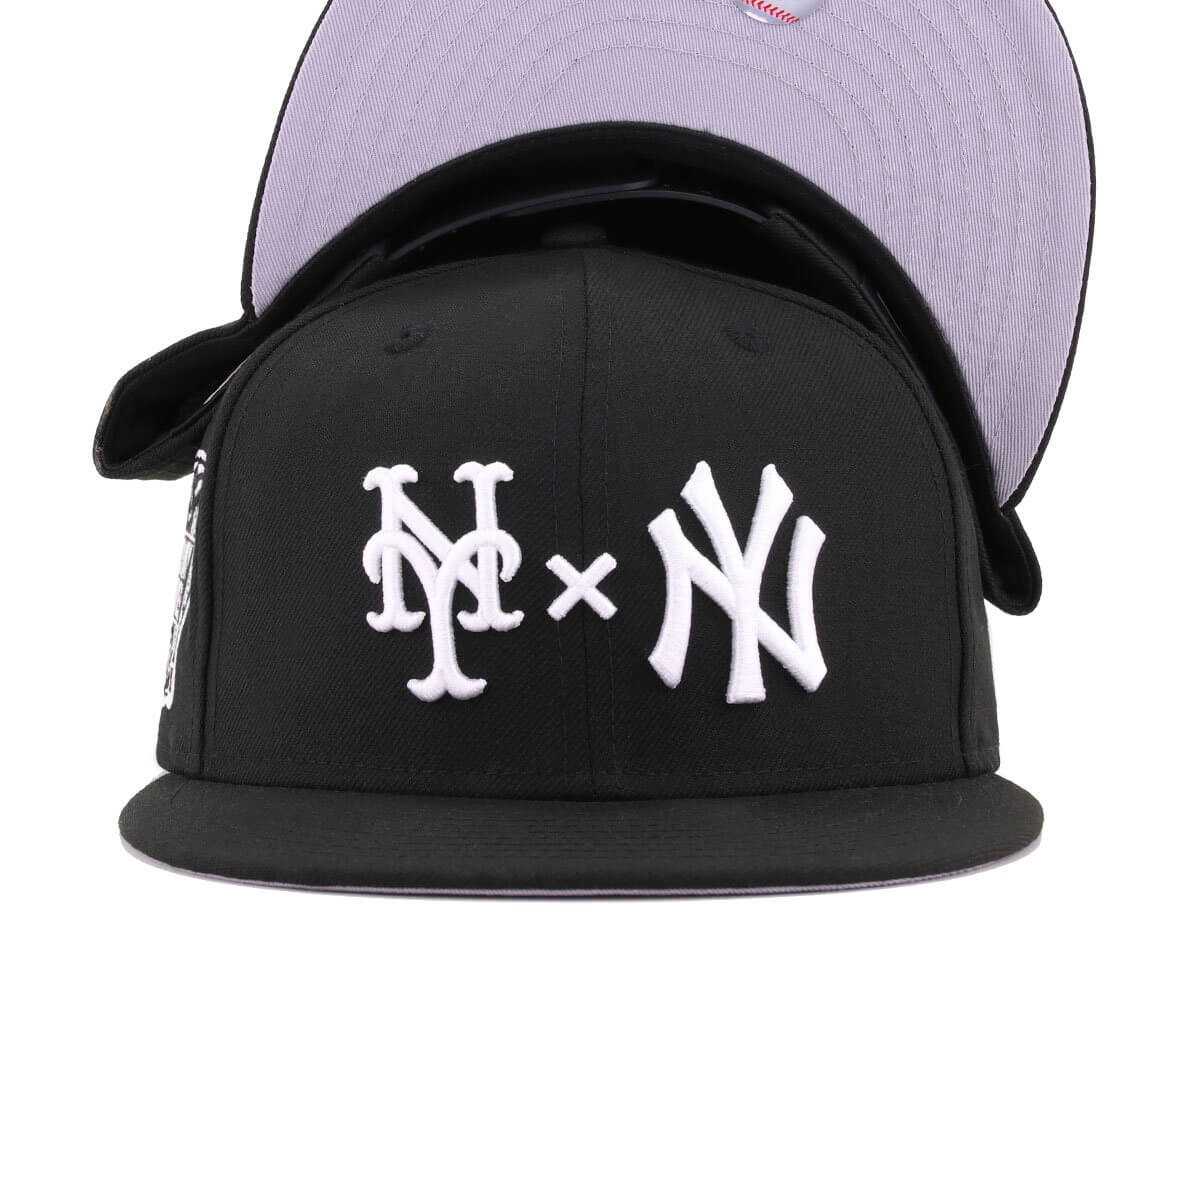 New York Yankees x New York Mets x Hat Heaven Black Subway Series New Era 9Fifty Snapback